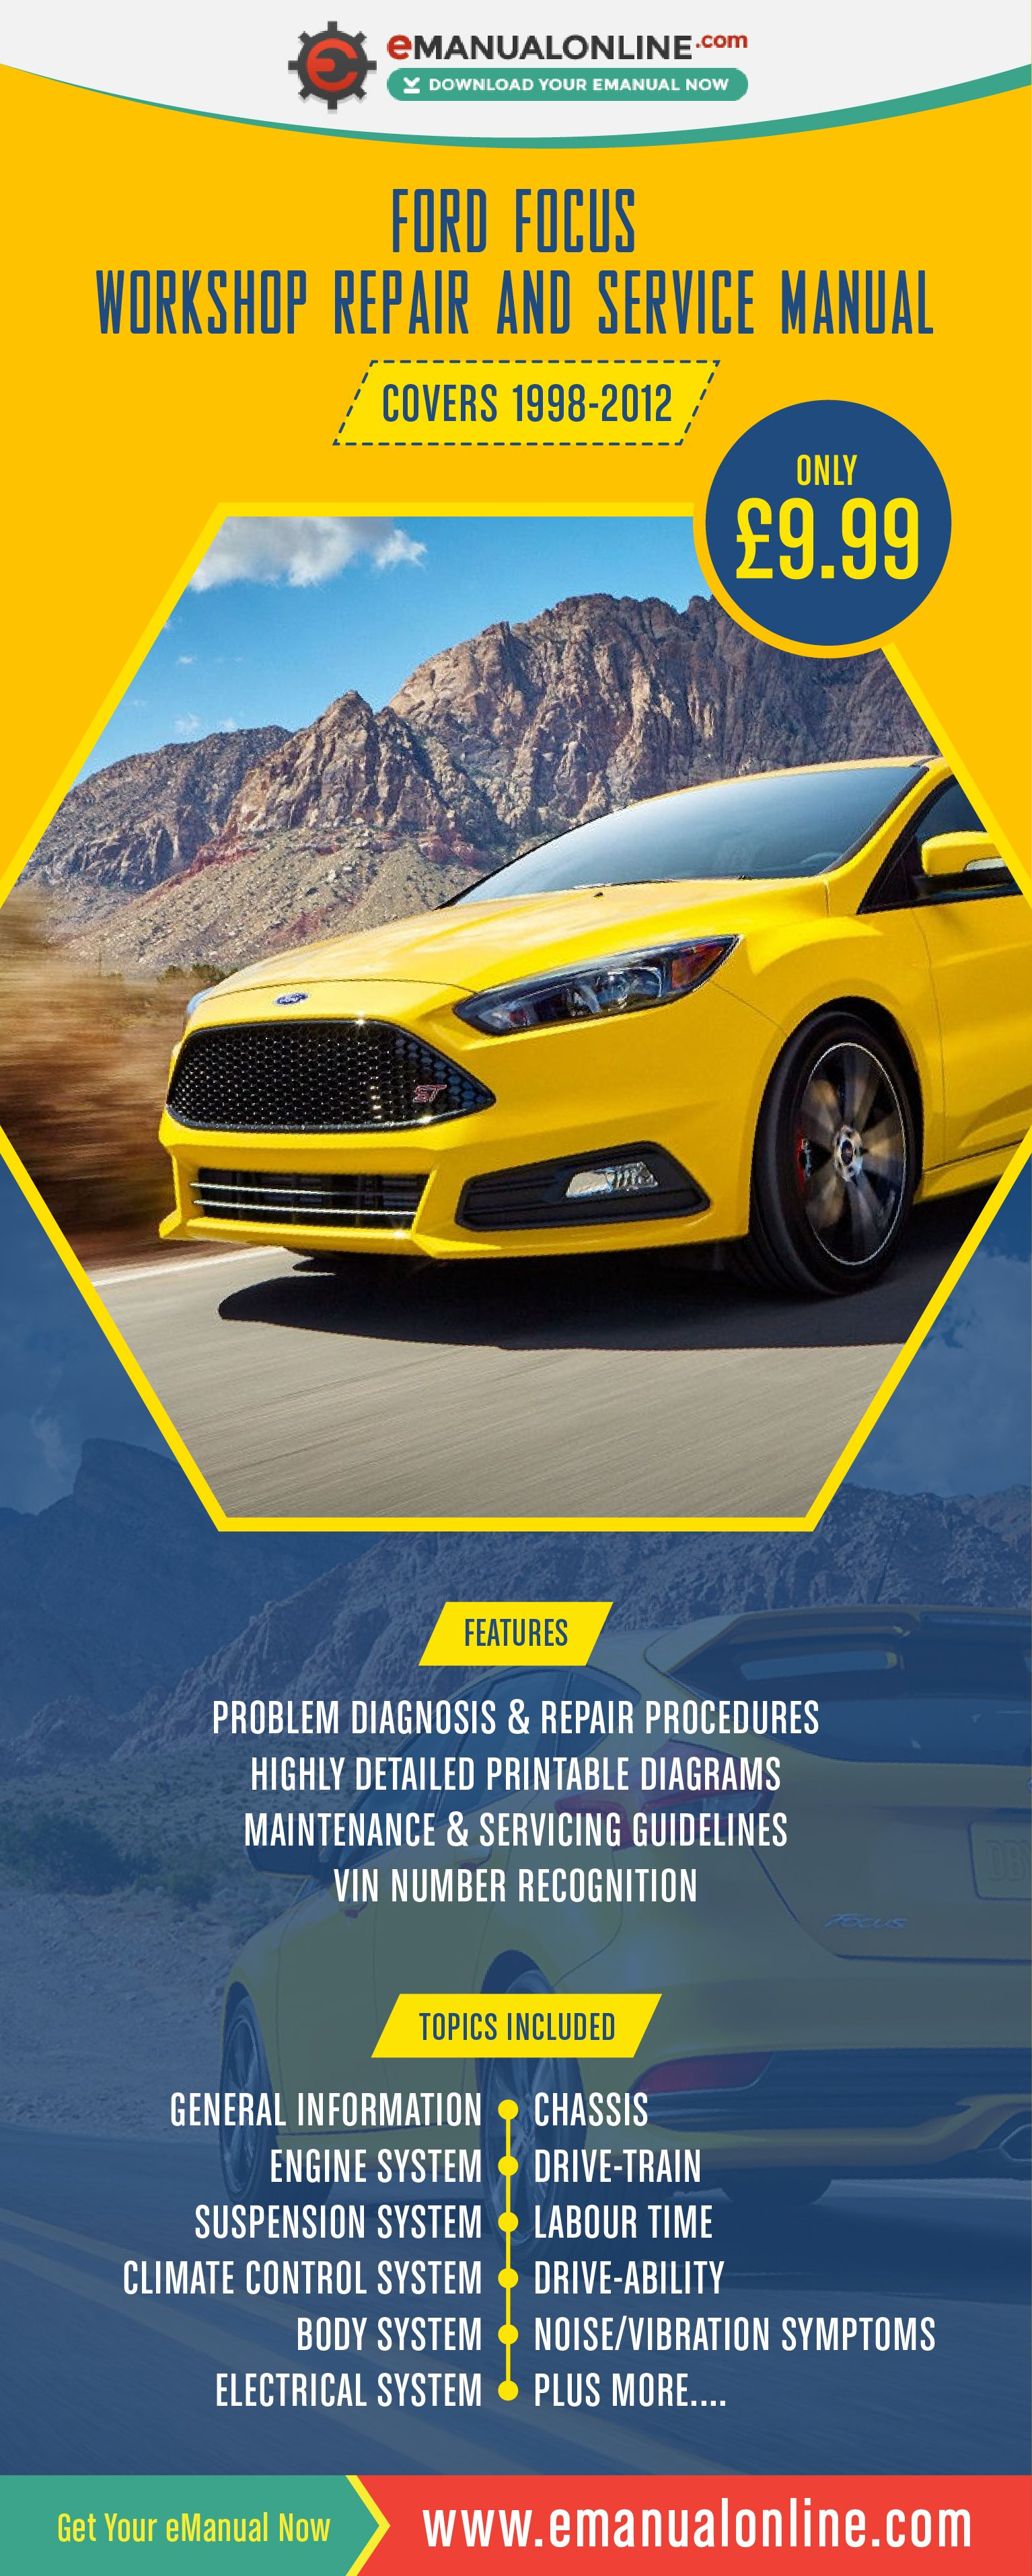 Ford focus workshop repair and service manual this workshop manual contains comprehensive data on repair procedures